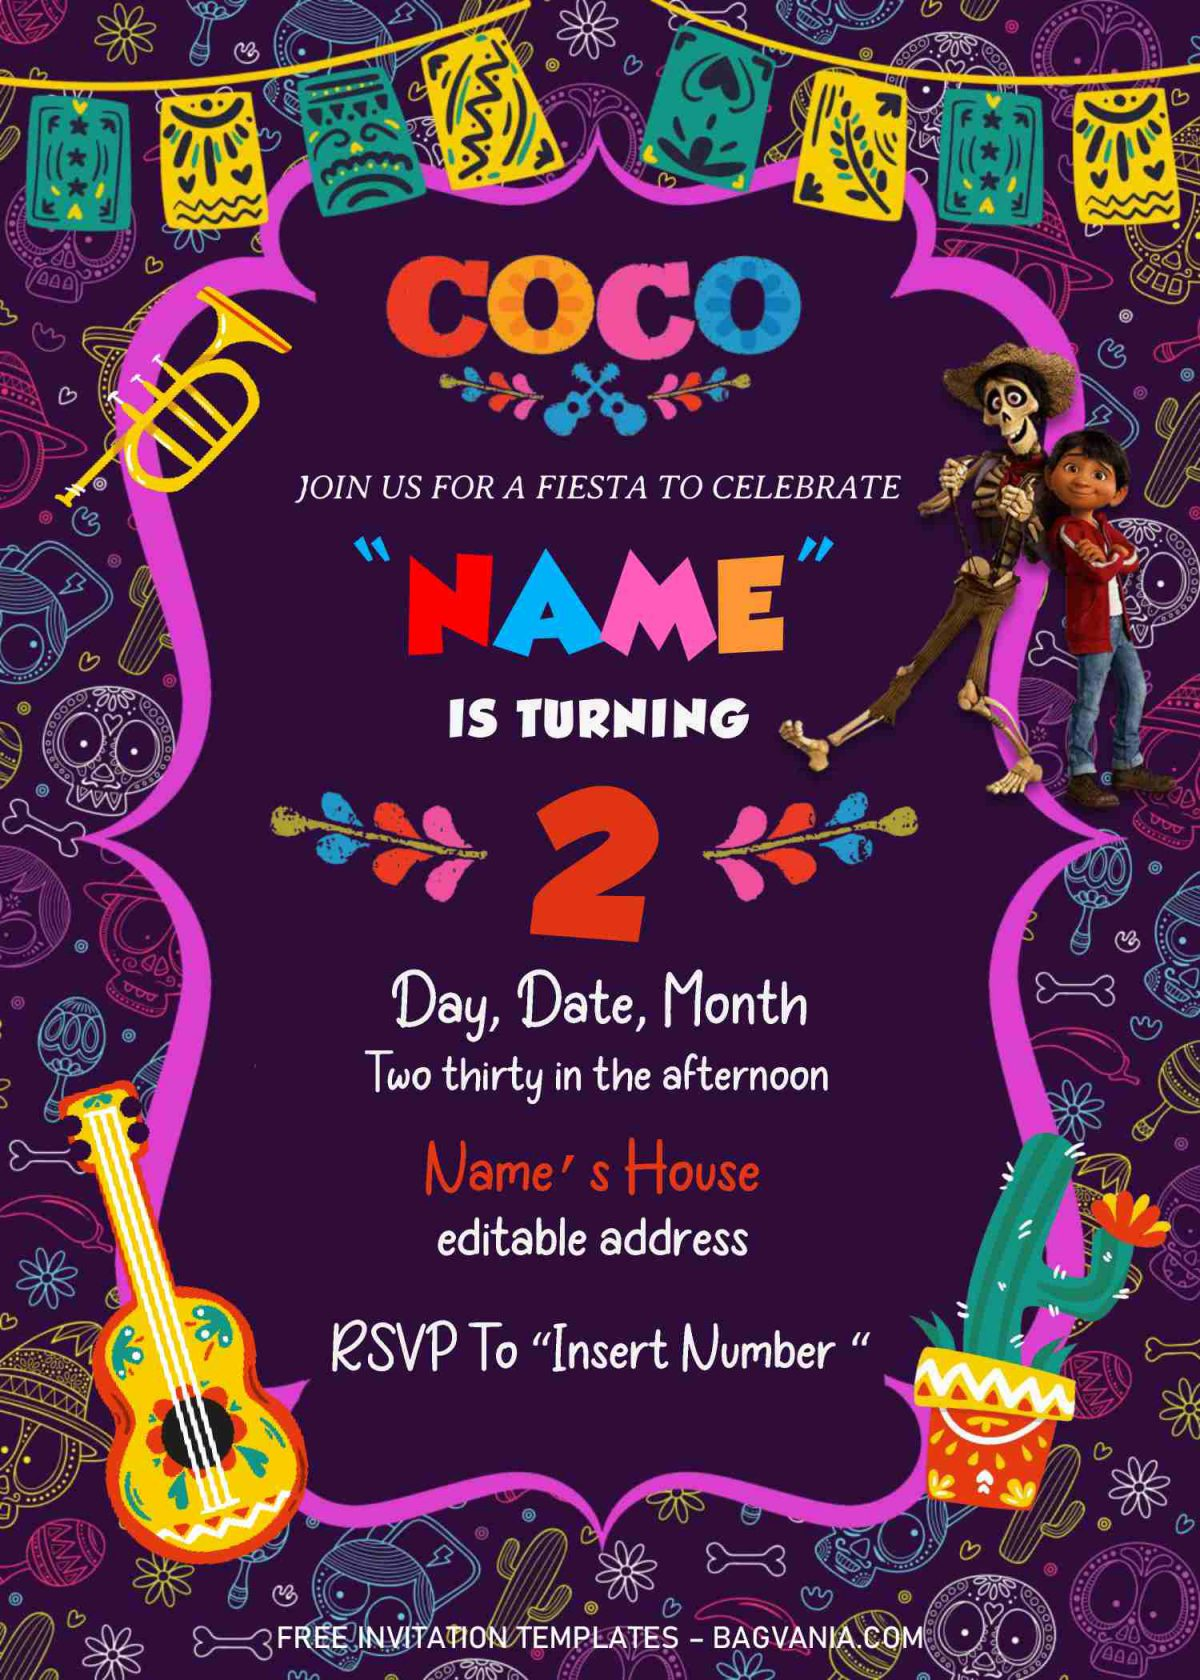 Coco Pixar Birthday Invitation Templates - Editable With MS Word and has portrait orientation